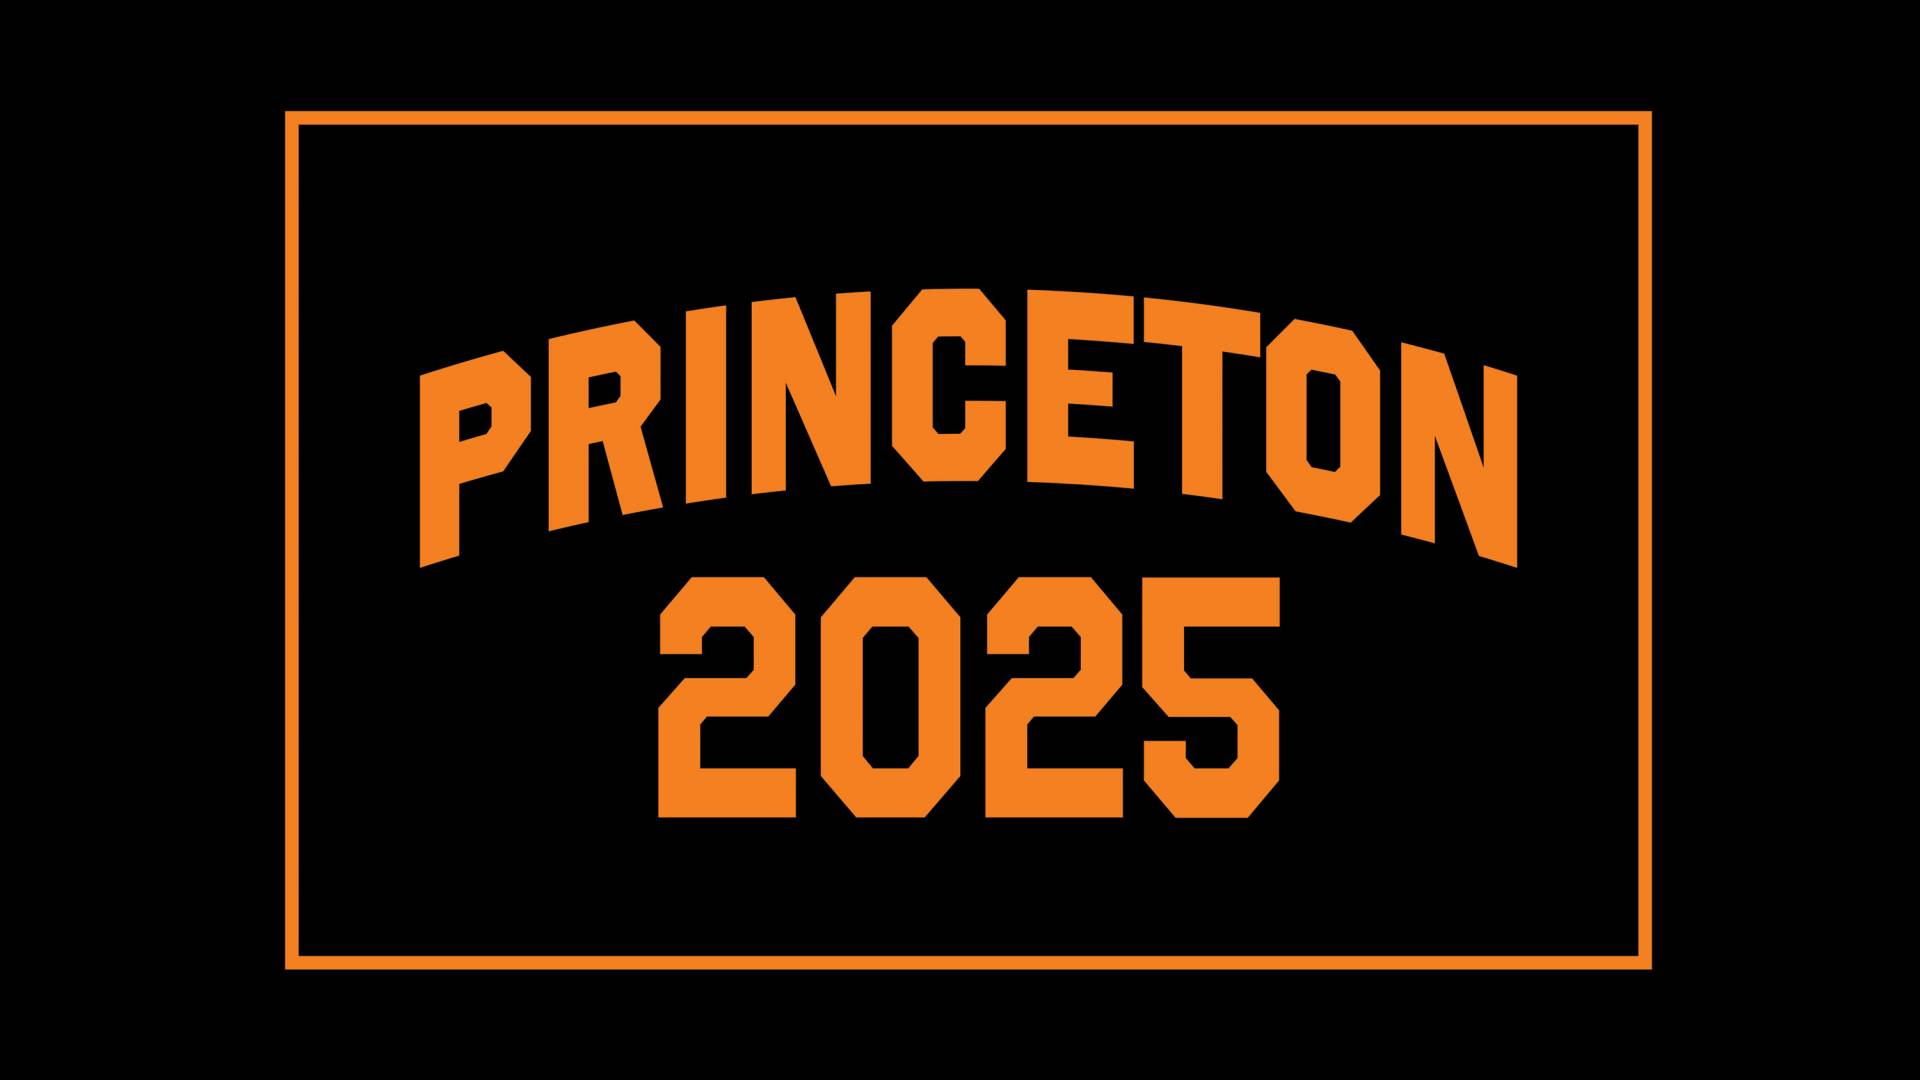 Princeton Academic Calendar Spring 2022.Welcome Website For Class Of 2025 Available